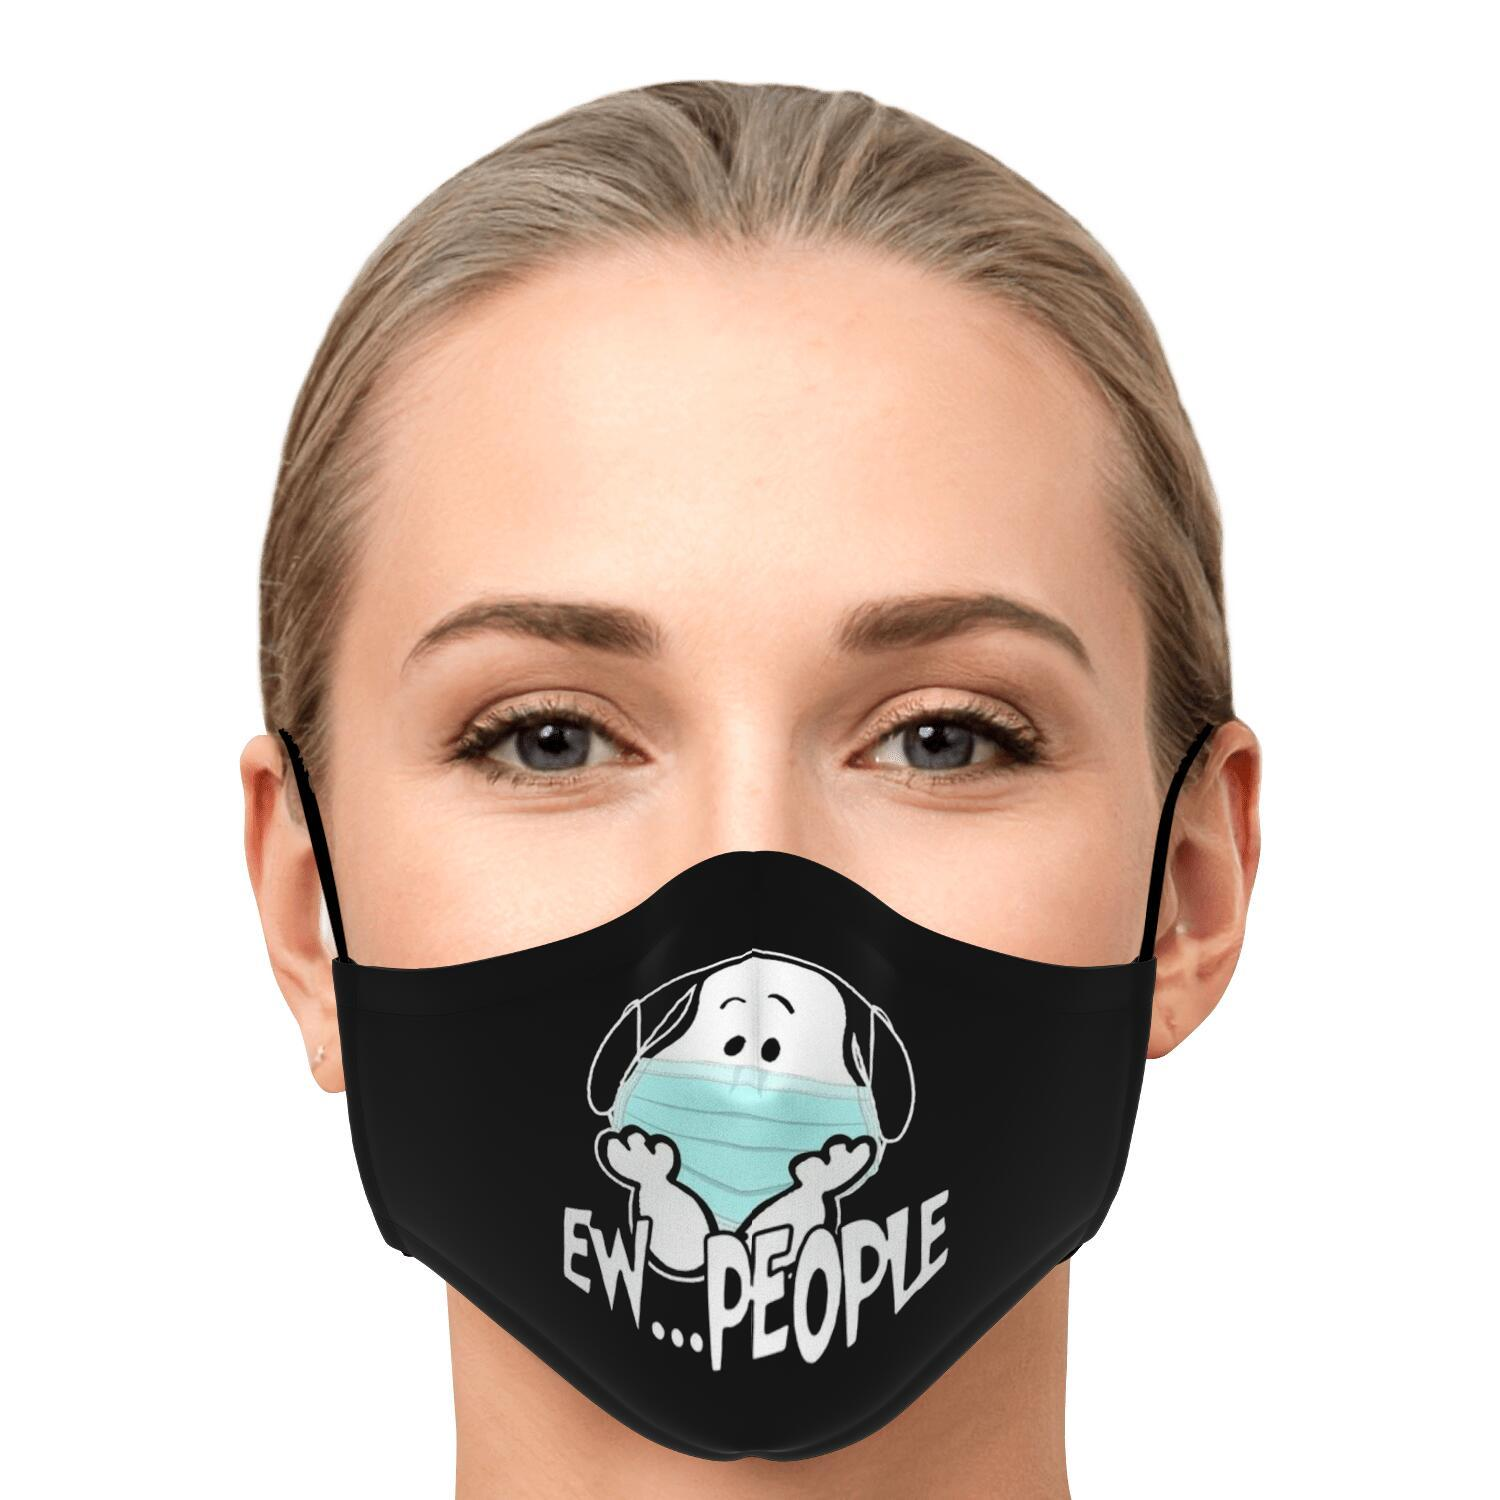 Ew People Snoopy Face Mask 1